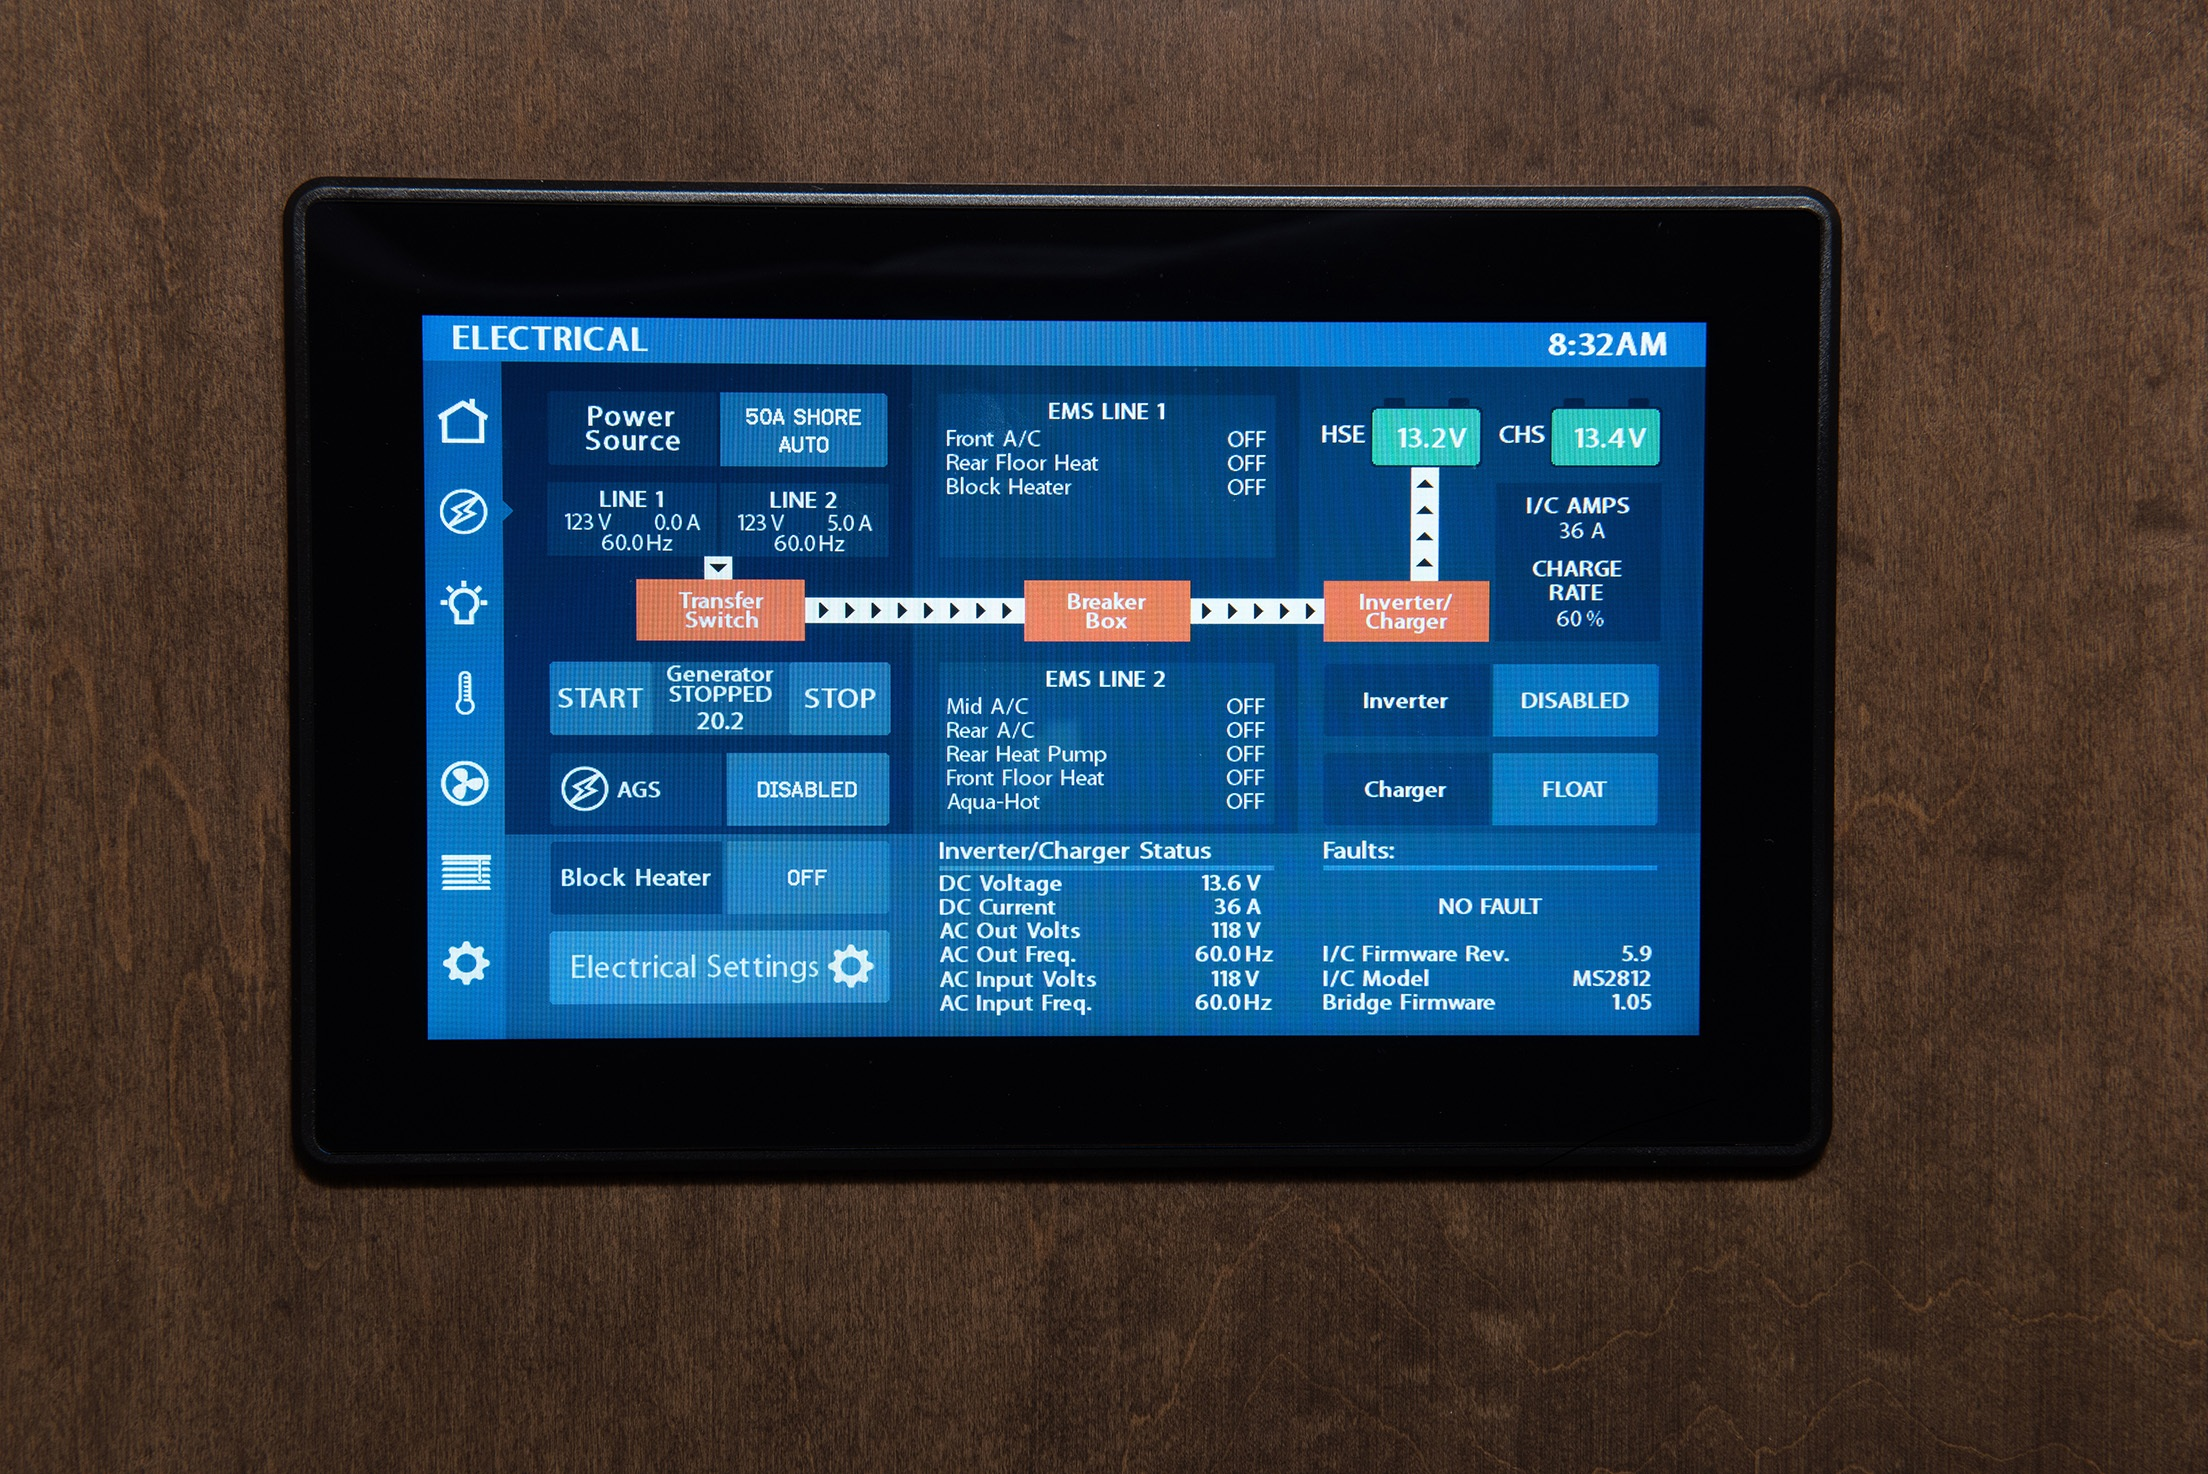 Take control with the Firefly touchscreen monitor. Control conveniently from your smart phone.